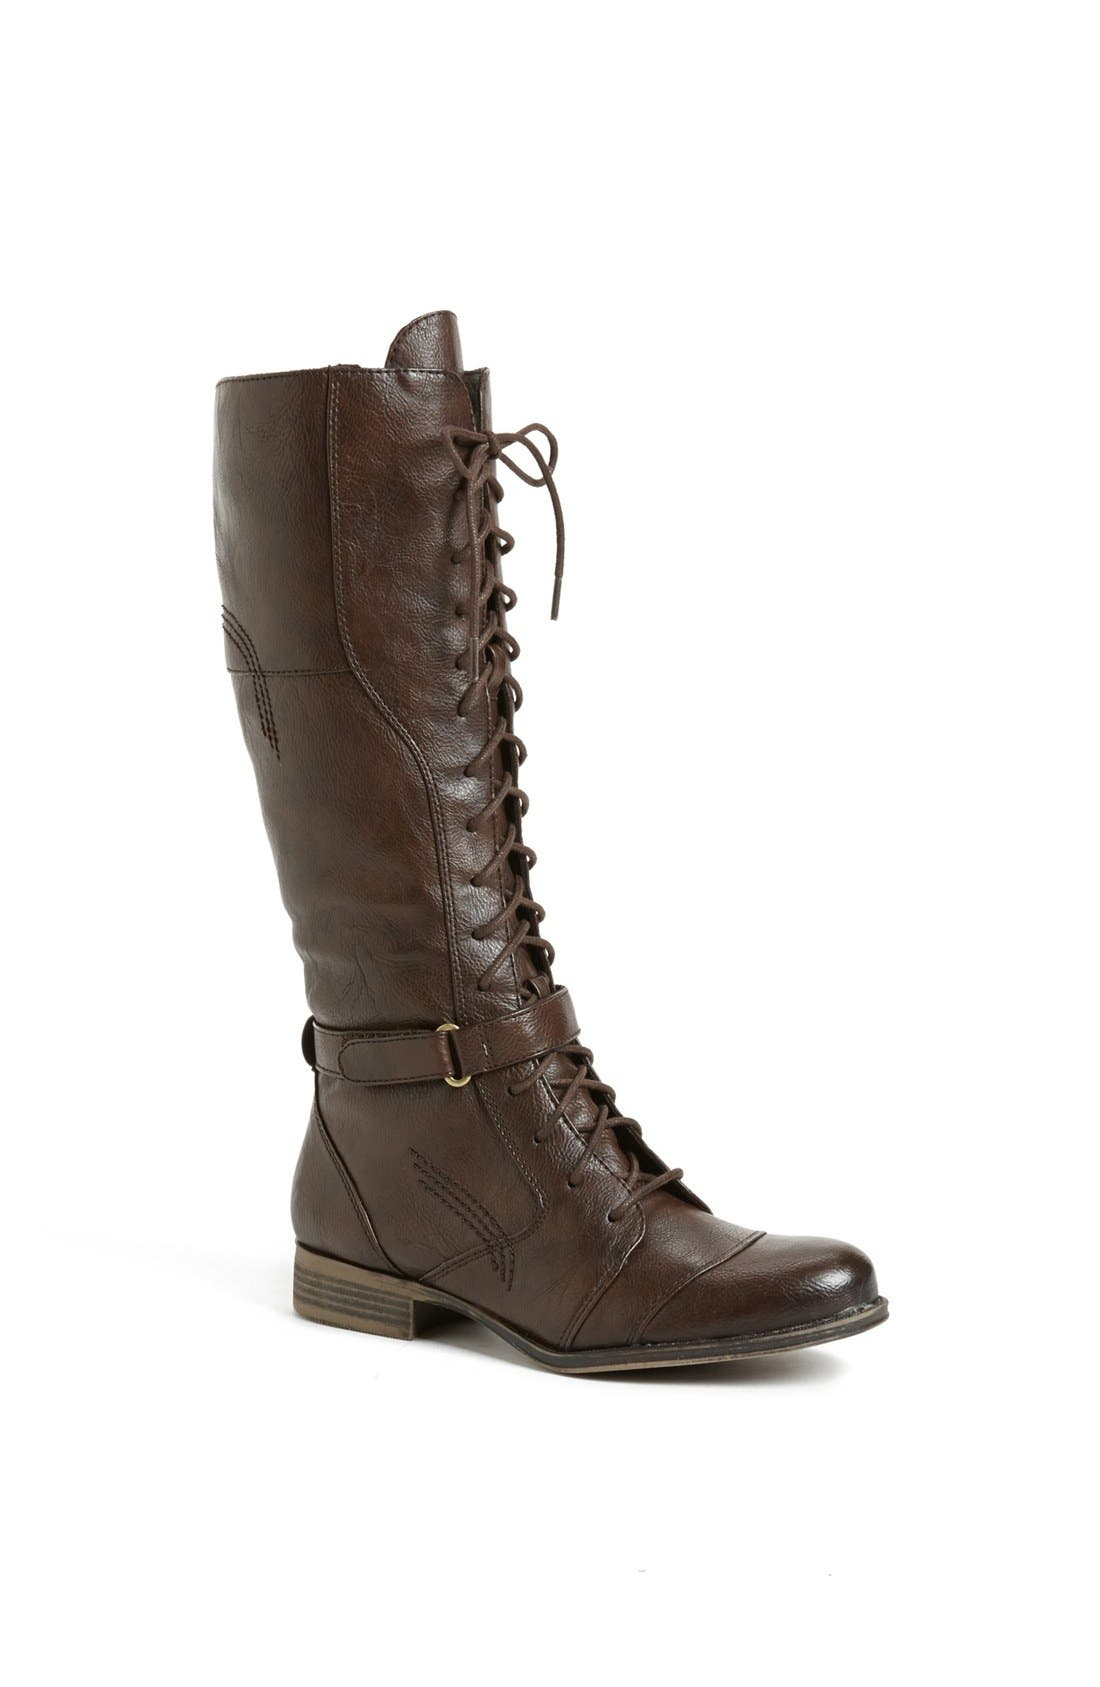 Alternate Image 1 Selected - Naturalizer 'Jakes' Boot